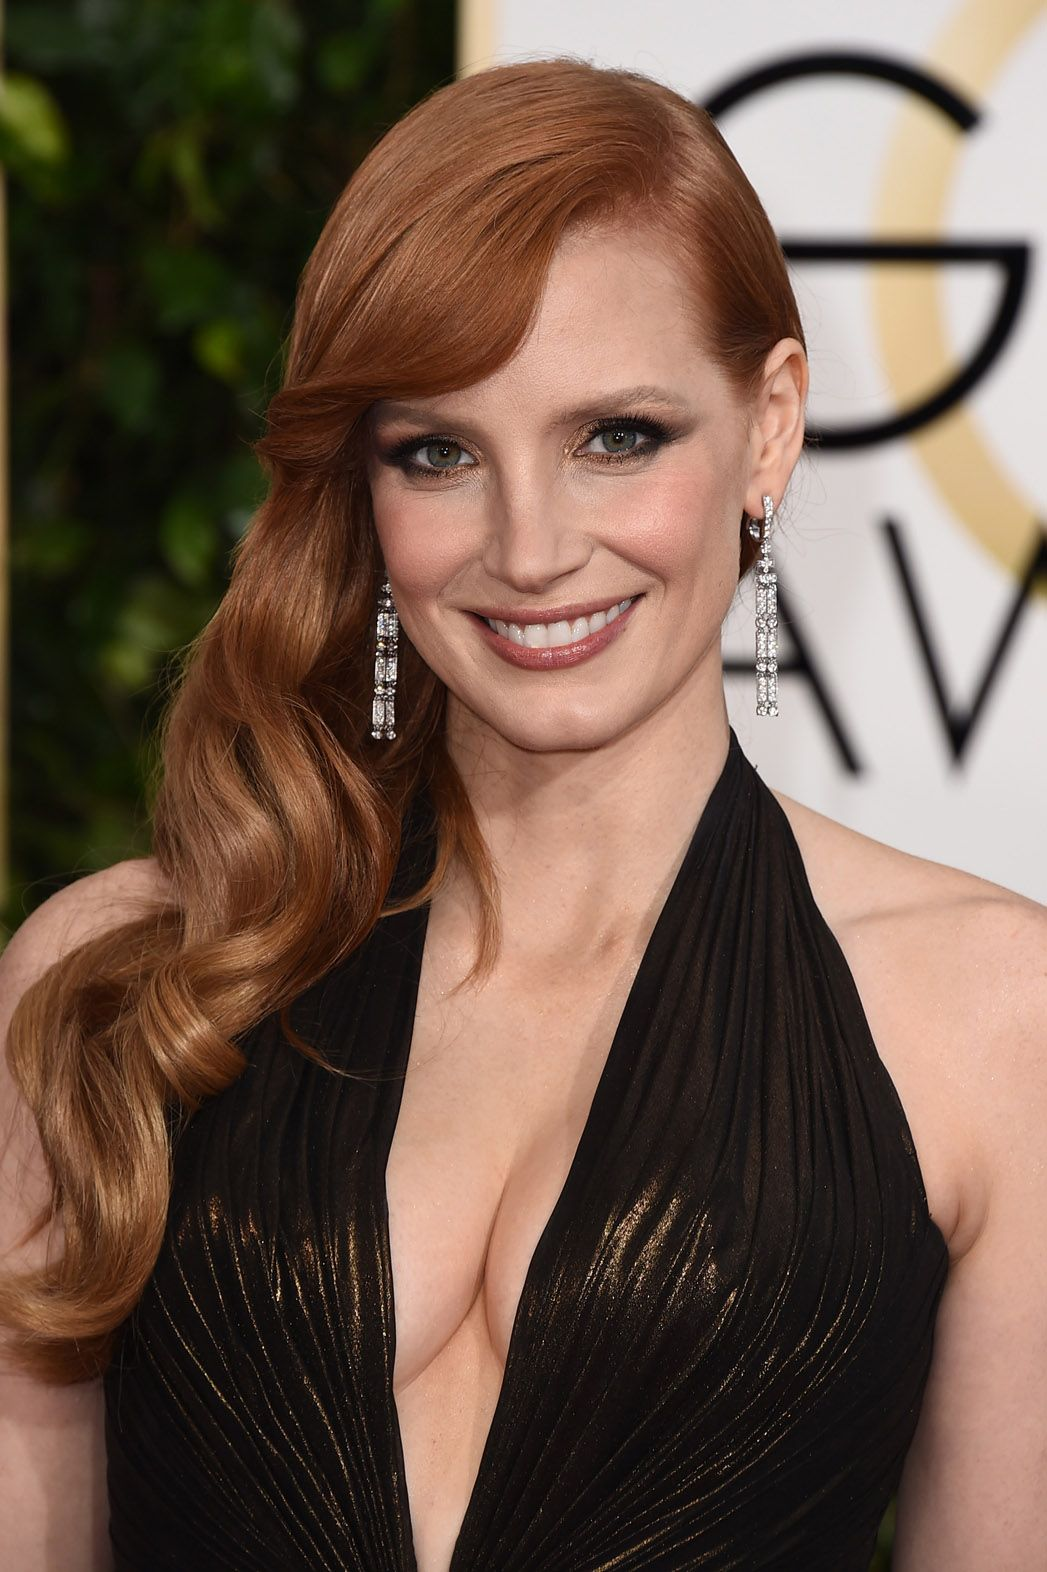 Jessica Chastain American Actress, Producer